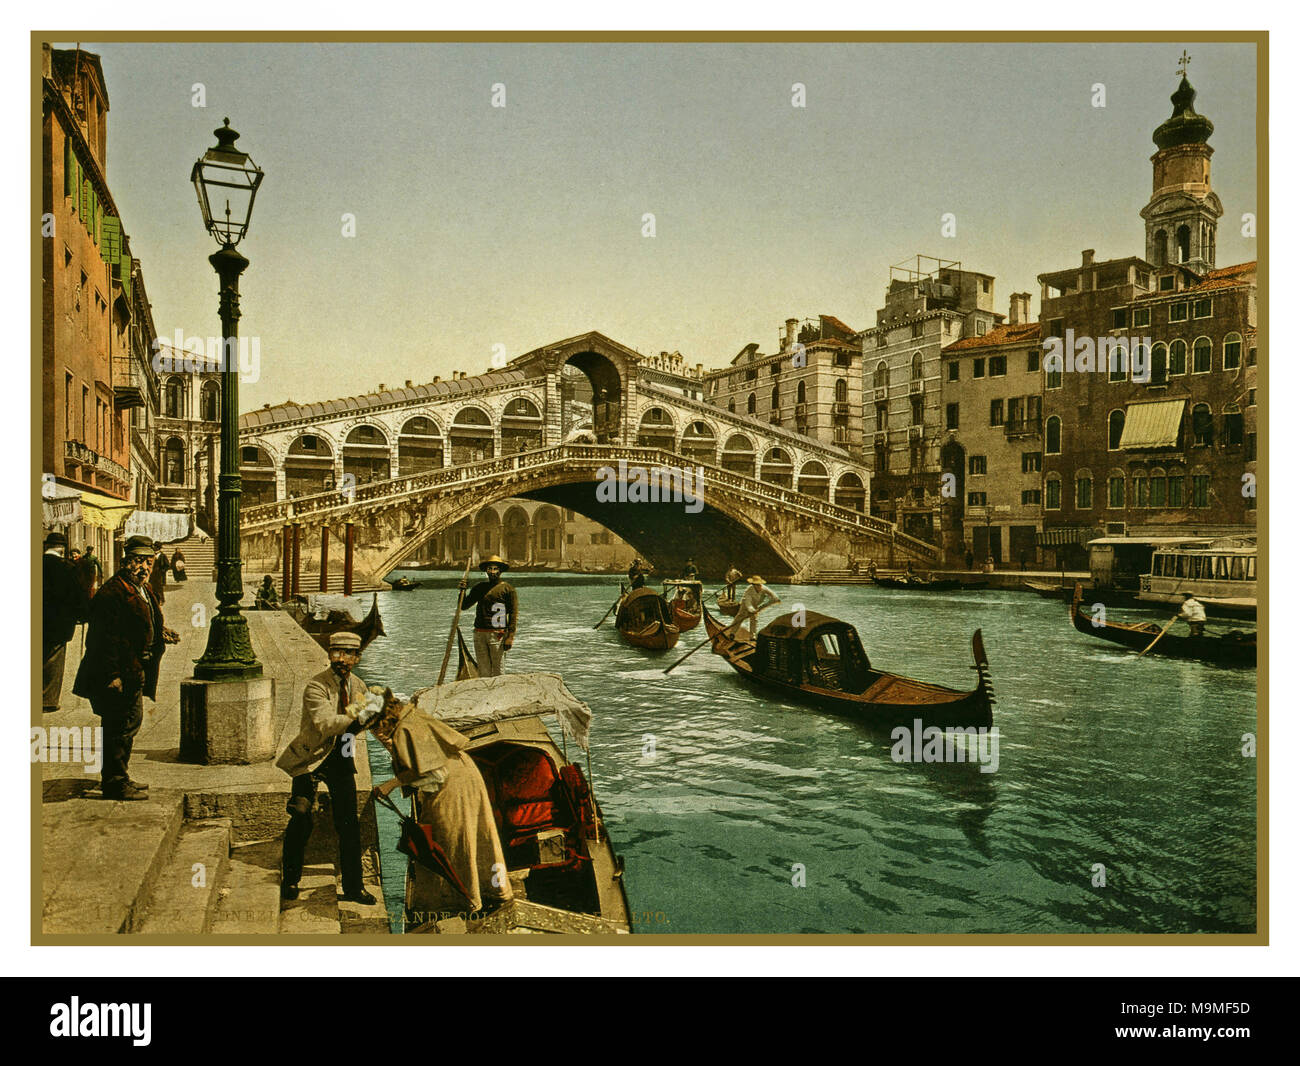 RIALTO BRIDGE VENICE GONDOLA Photochrome 1890-1900's Historic Vintage Old image of The Rialto Bridge, Venice, Italy 1890 Using post colouring technique via transfer onto lithographic printing plates from Black and White negative images - Stock Image